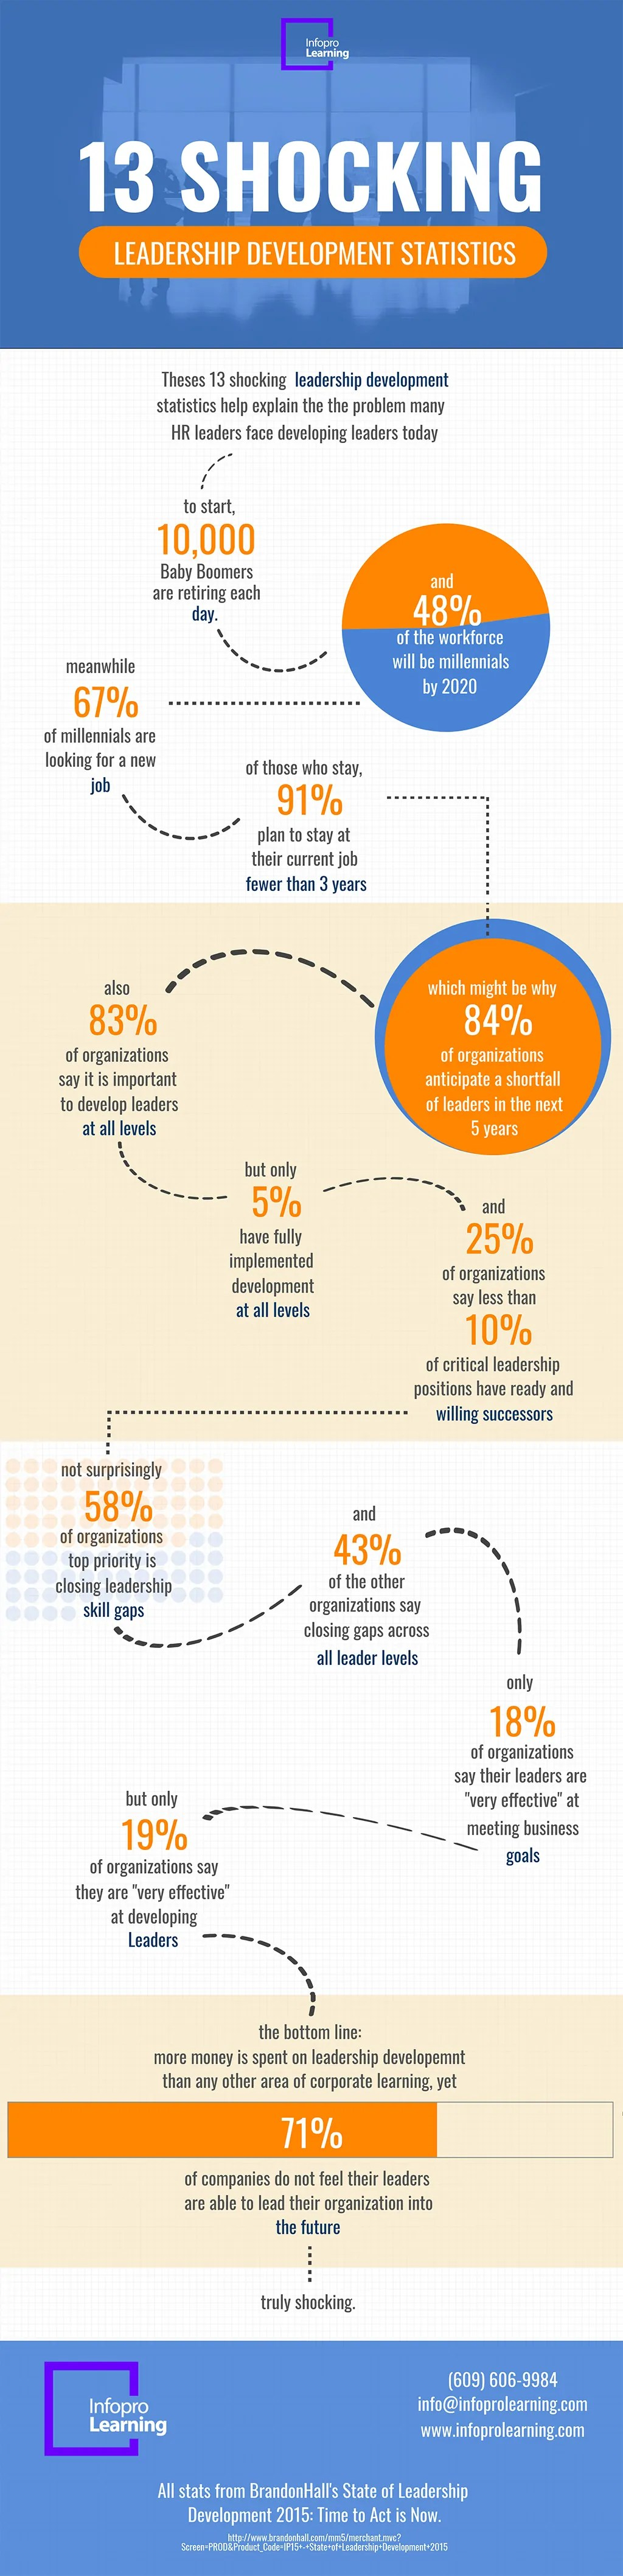 13 Shocking Leadership Development Statistics Infographic